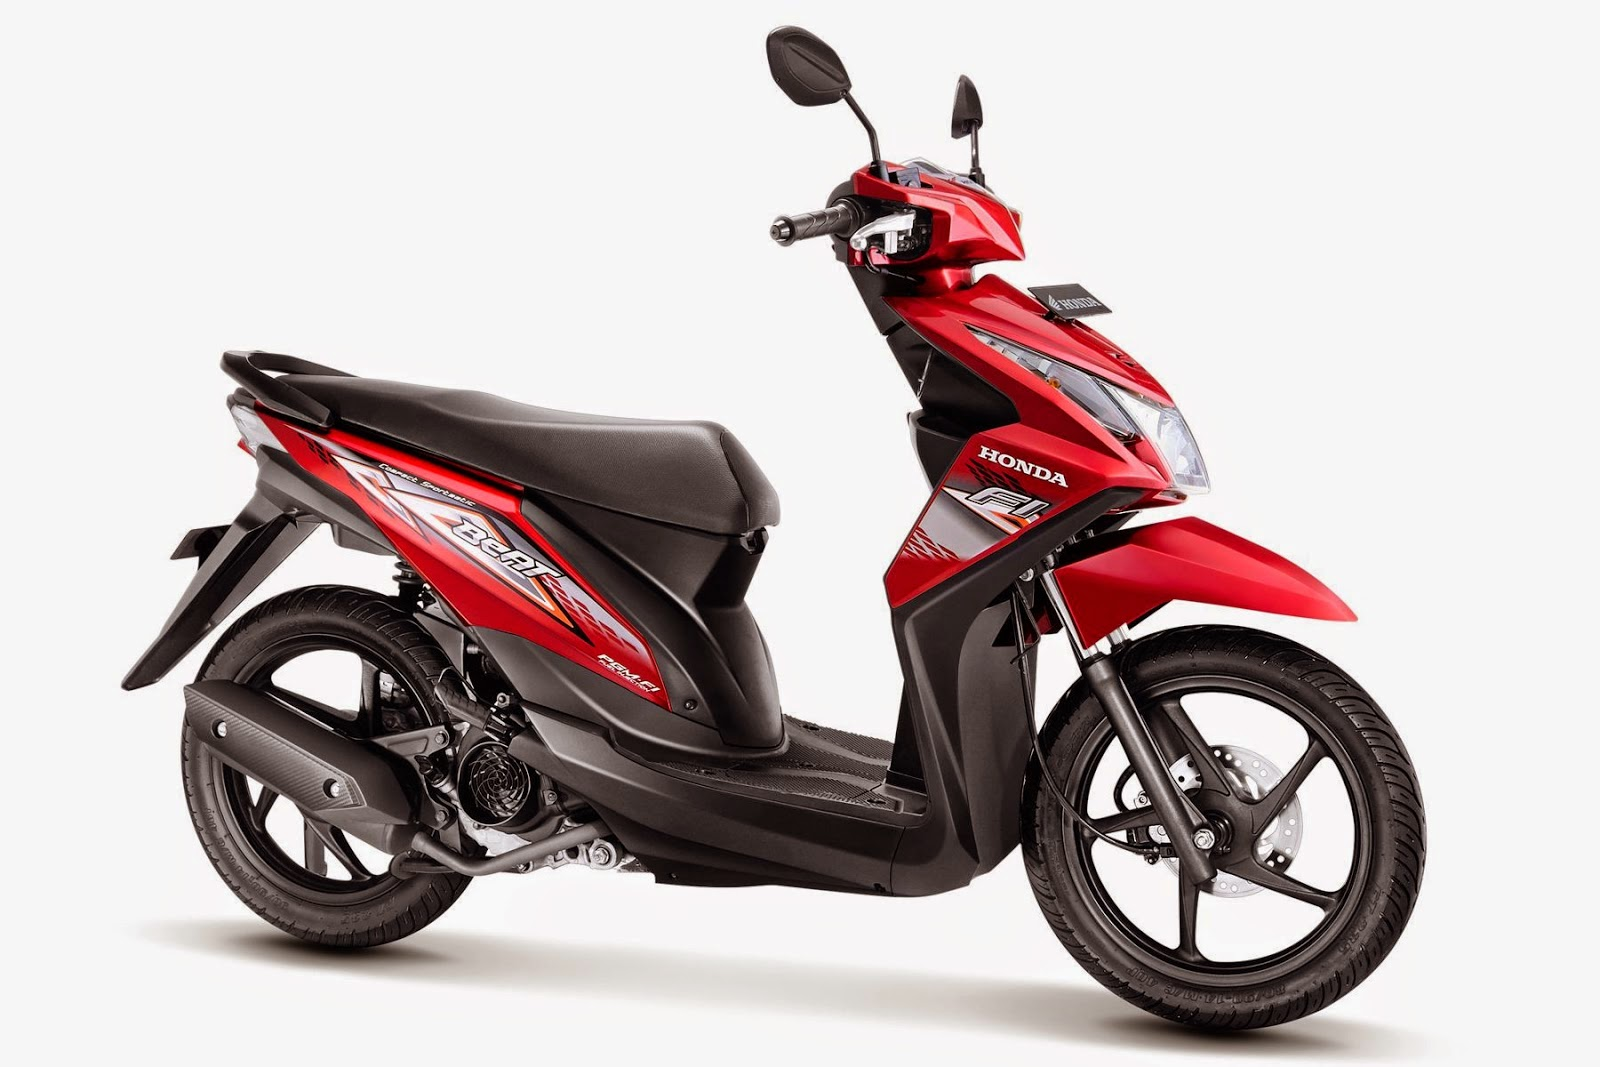 Scoopy Pgm Fi Modifikasi